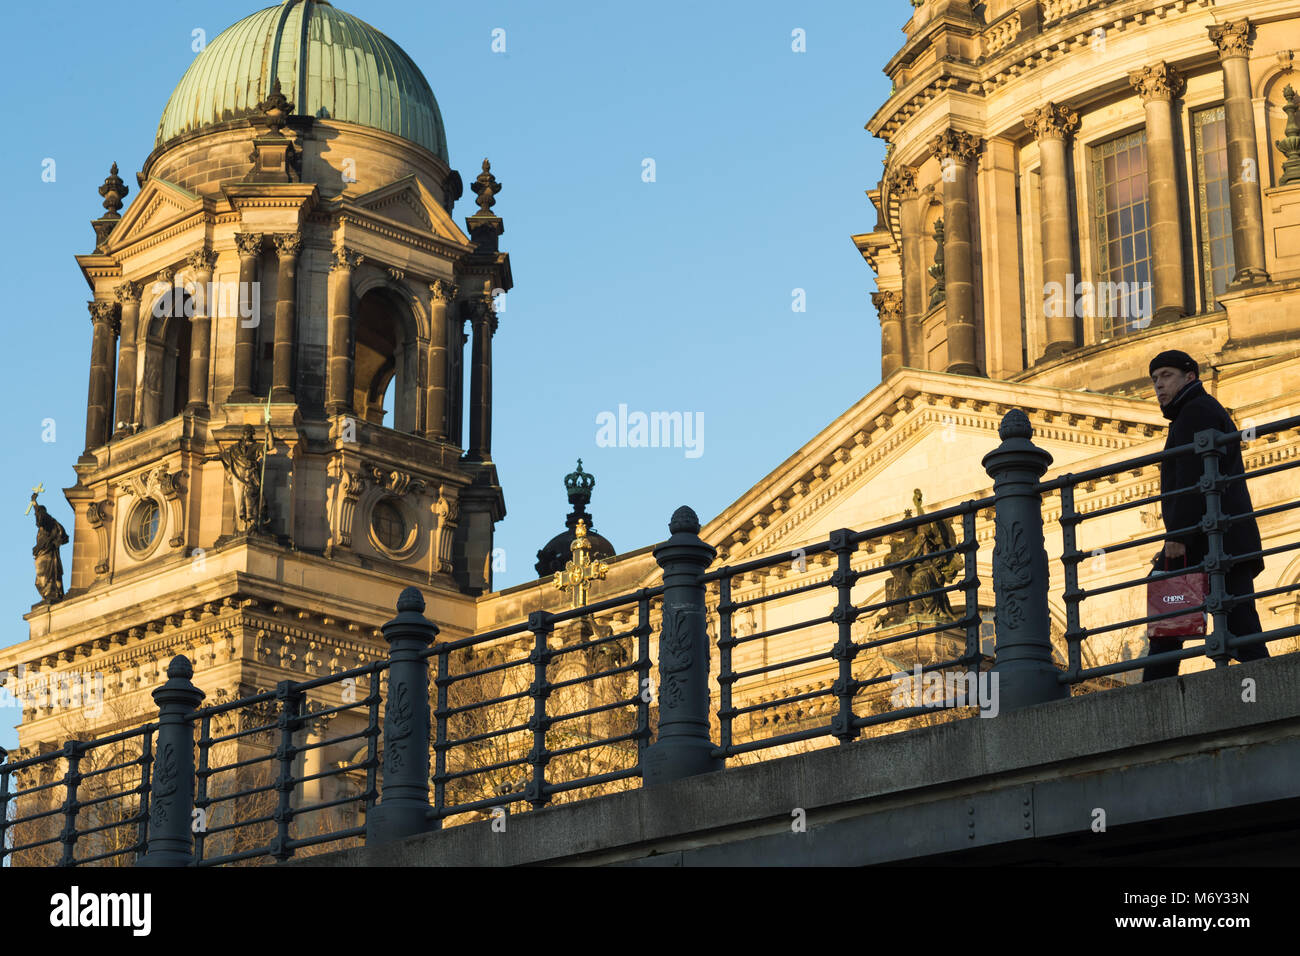 Le Berliner Dom, Am Lustgarten, Mitte, Berlin, Allemagne Photo Stock